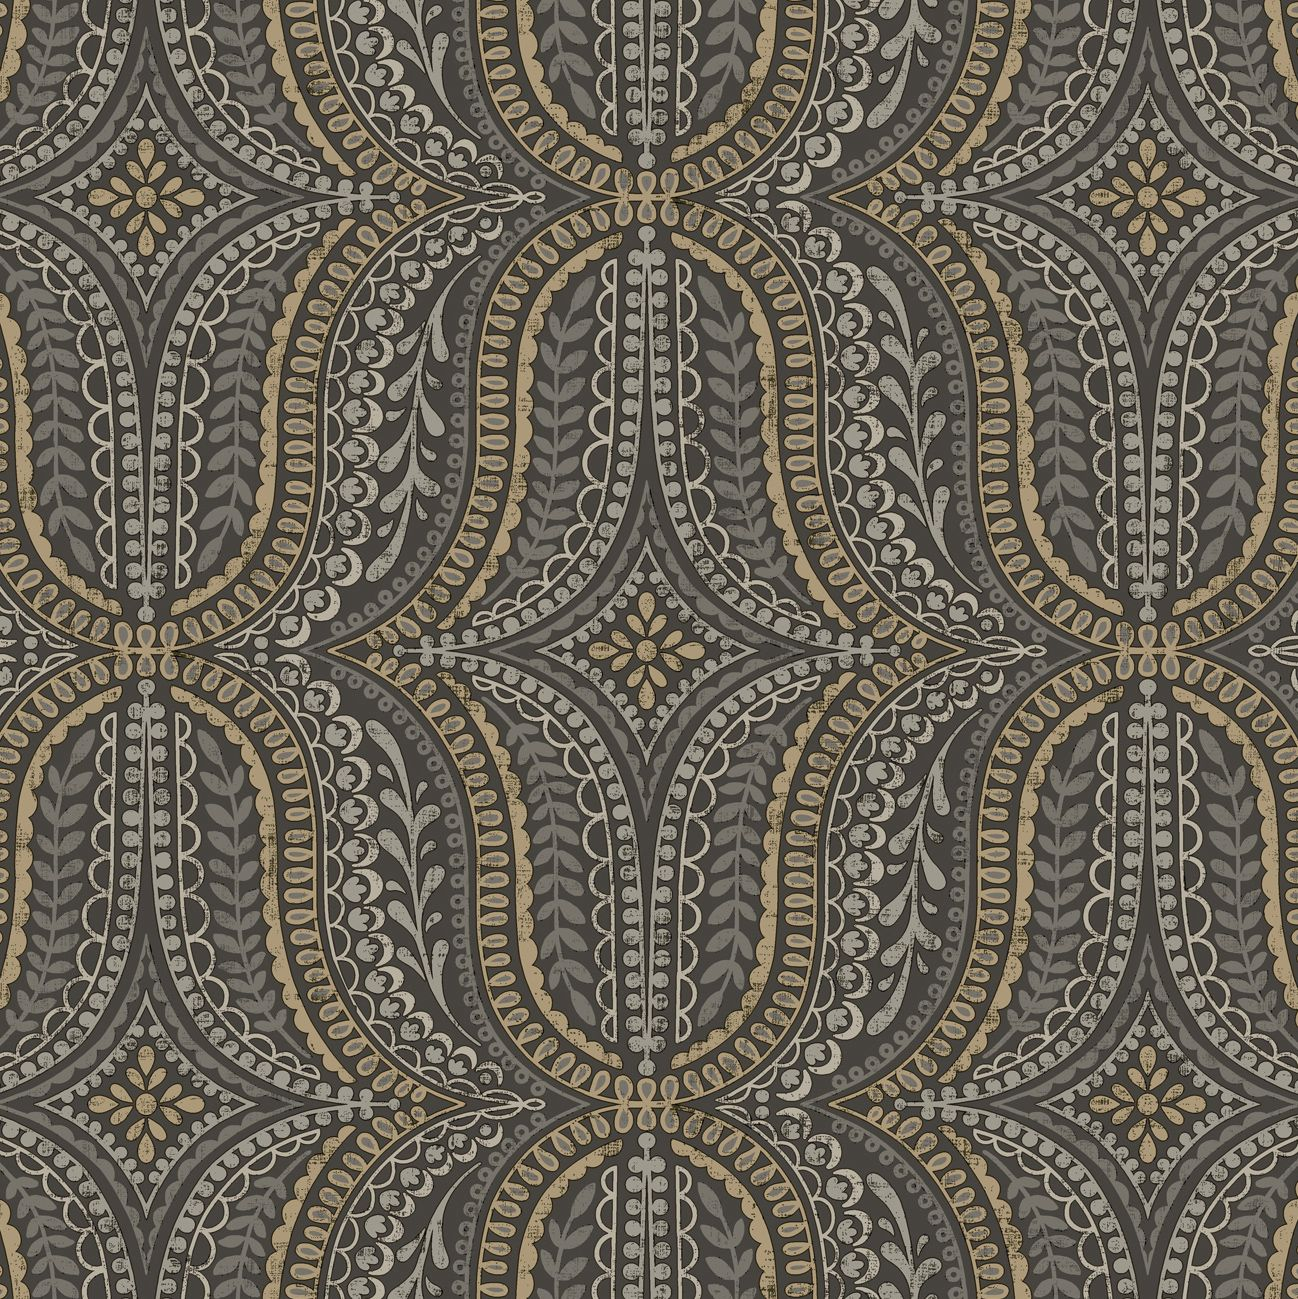 Statement Farah Black Gold Effect Geometric Wallpaper